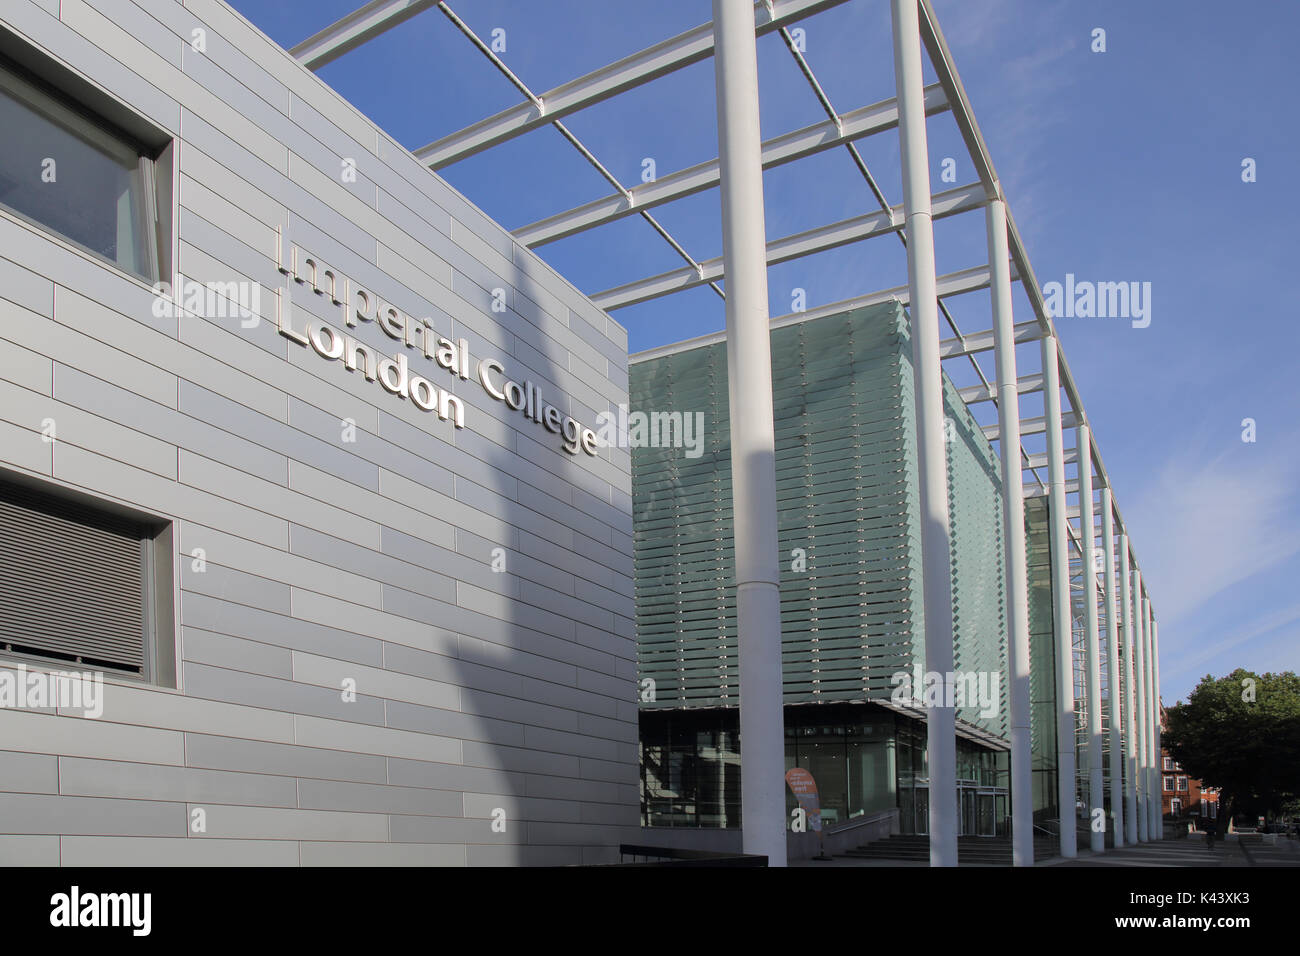 imperial college of science and technology london - Stock Image